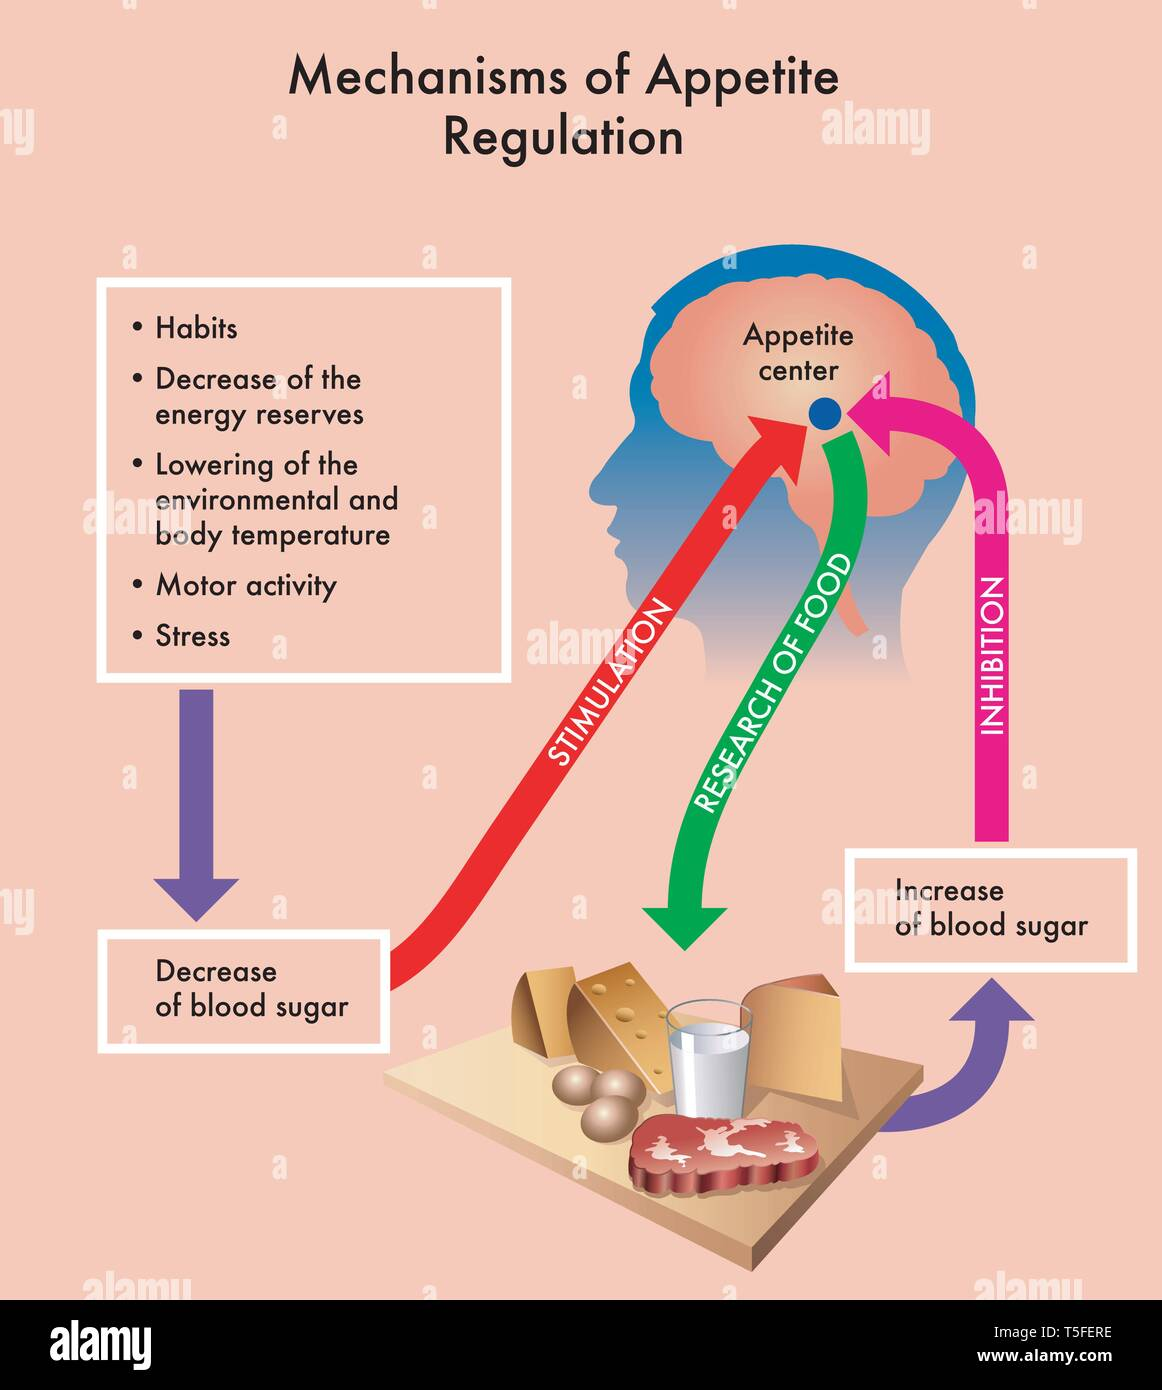 Medical diagram showing of the mechanisms of appetite regulation. - Stock Image